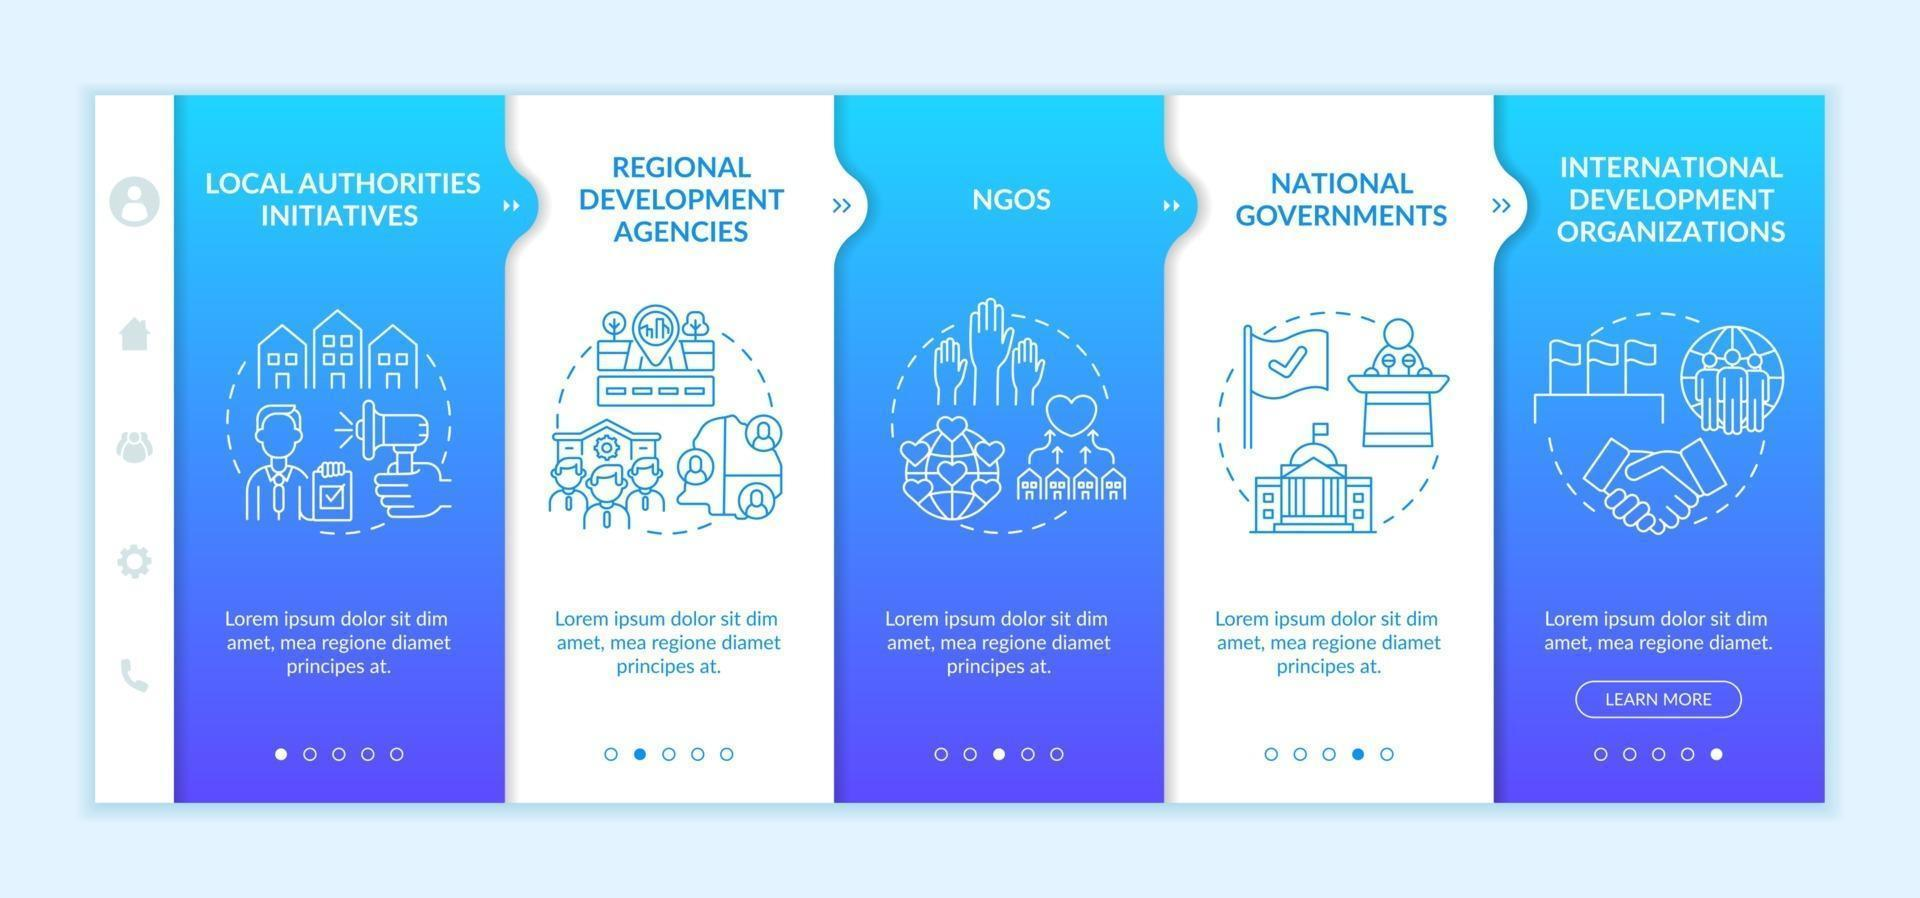 Social unit development programs levels onboarding vector template. Responsive mobile website with icons. Web page walkthrough 5 step screens. Regional agencies color concept with linear illustrations